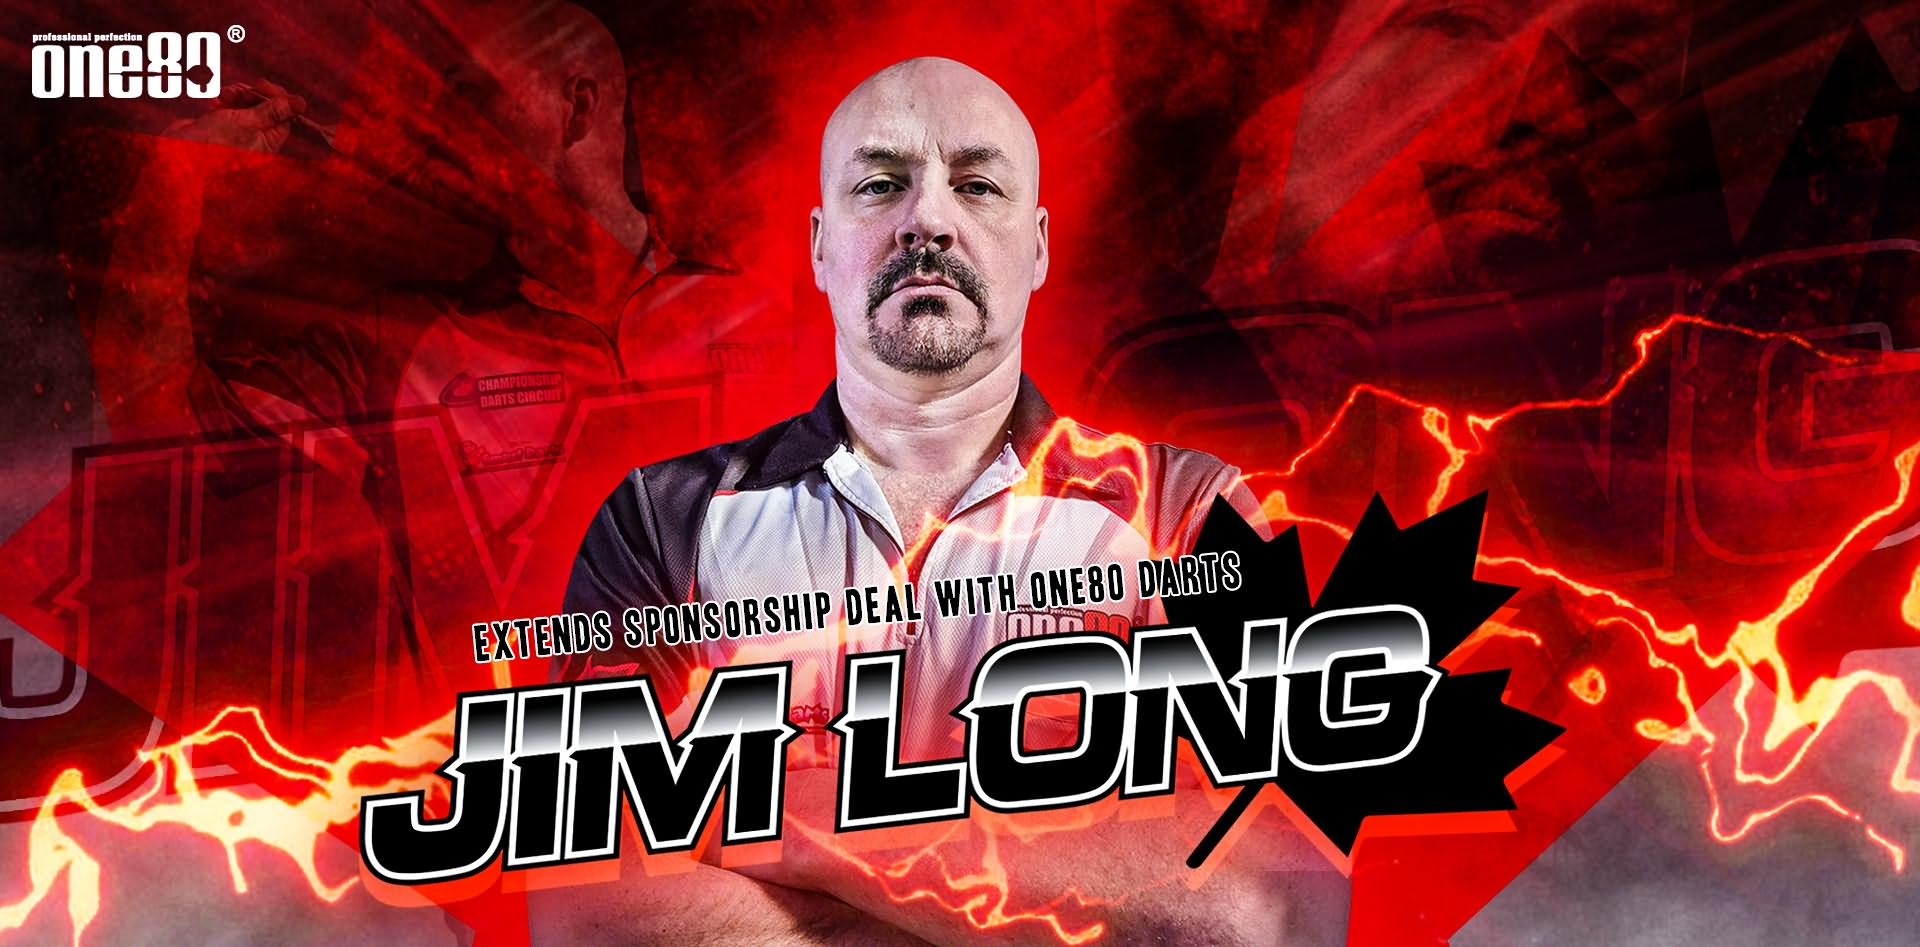 Jim Long, extends sponsorship, one80 darts